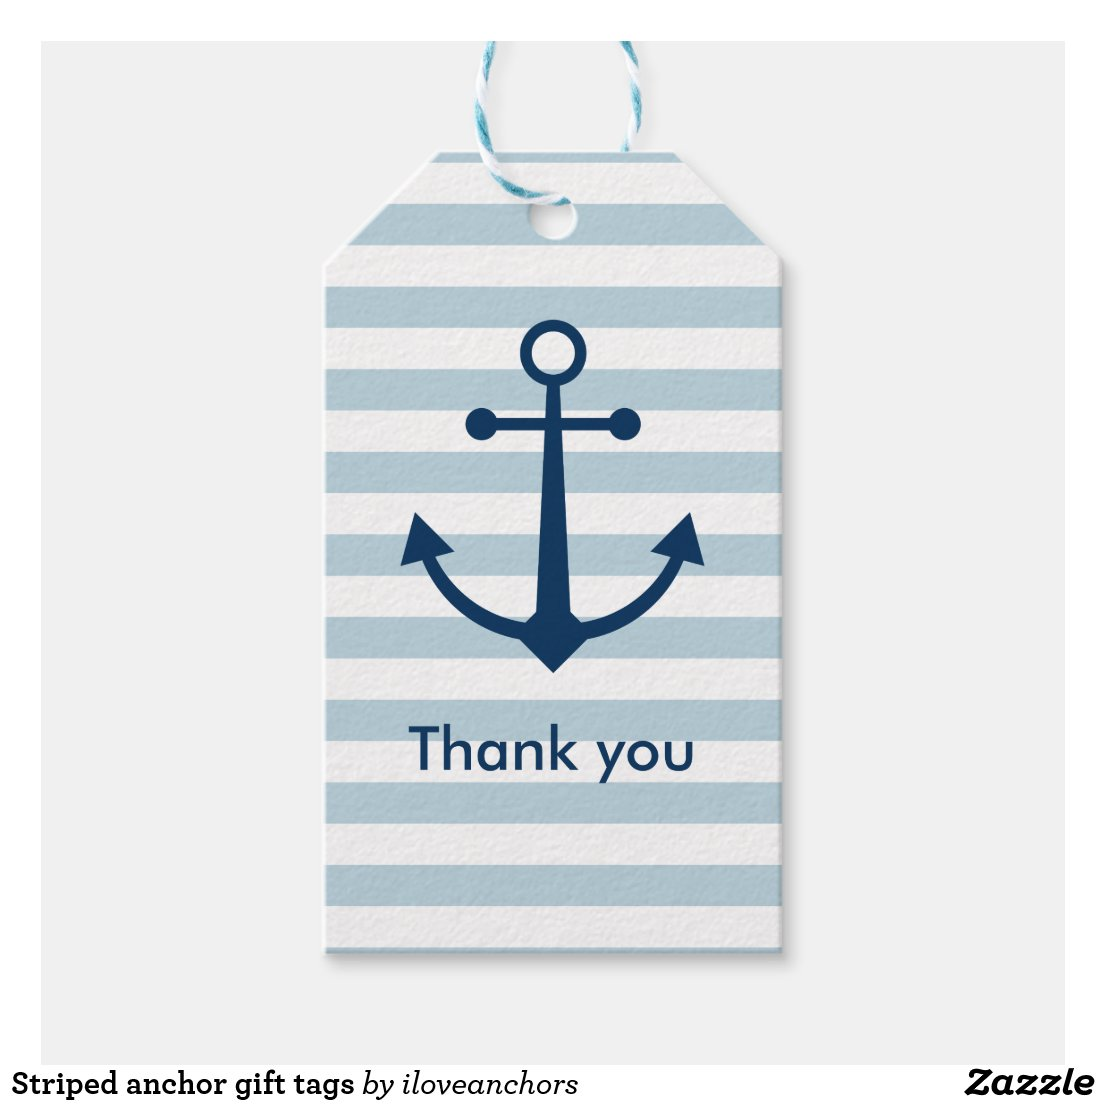 Striped anchor gift tags